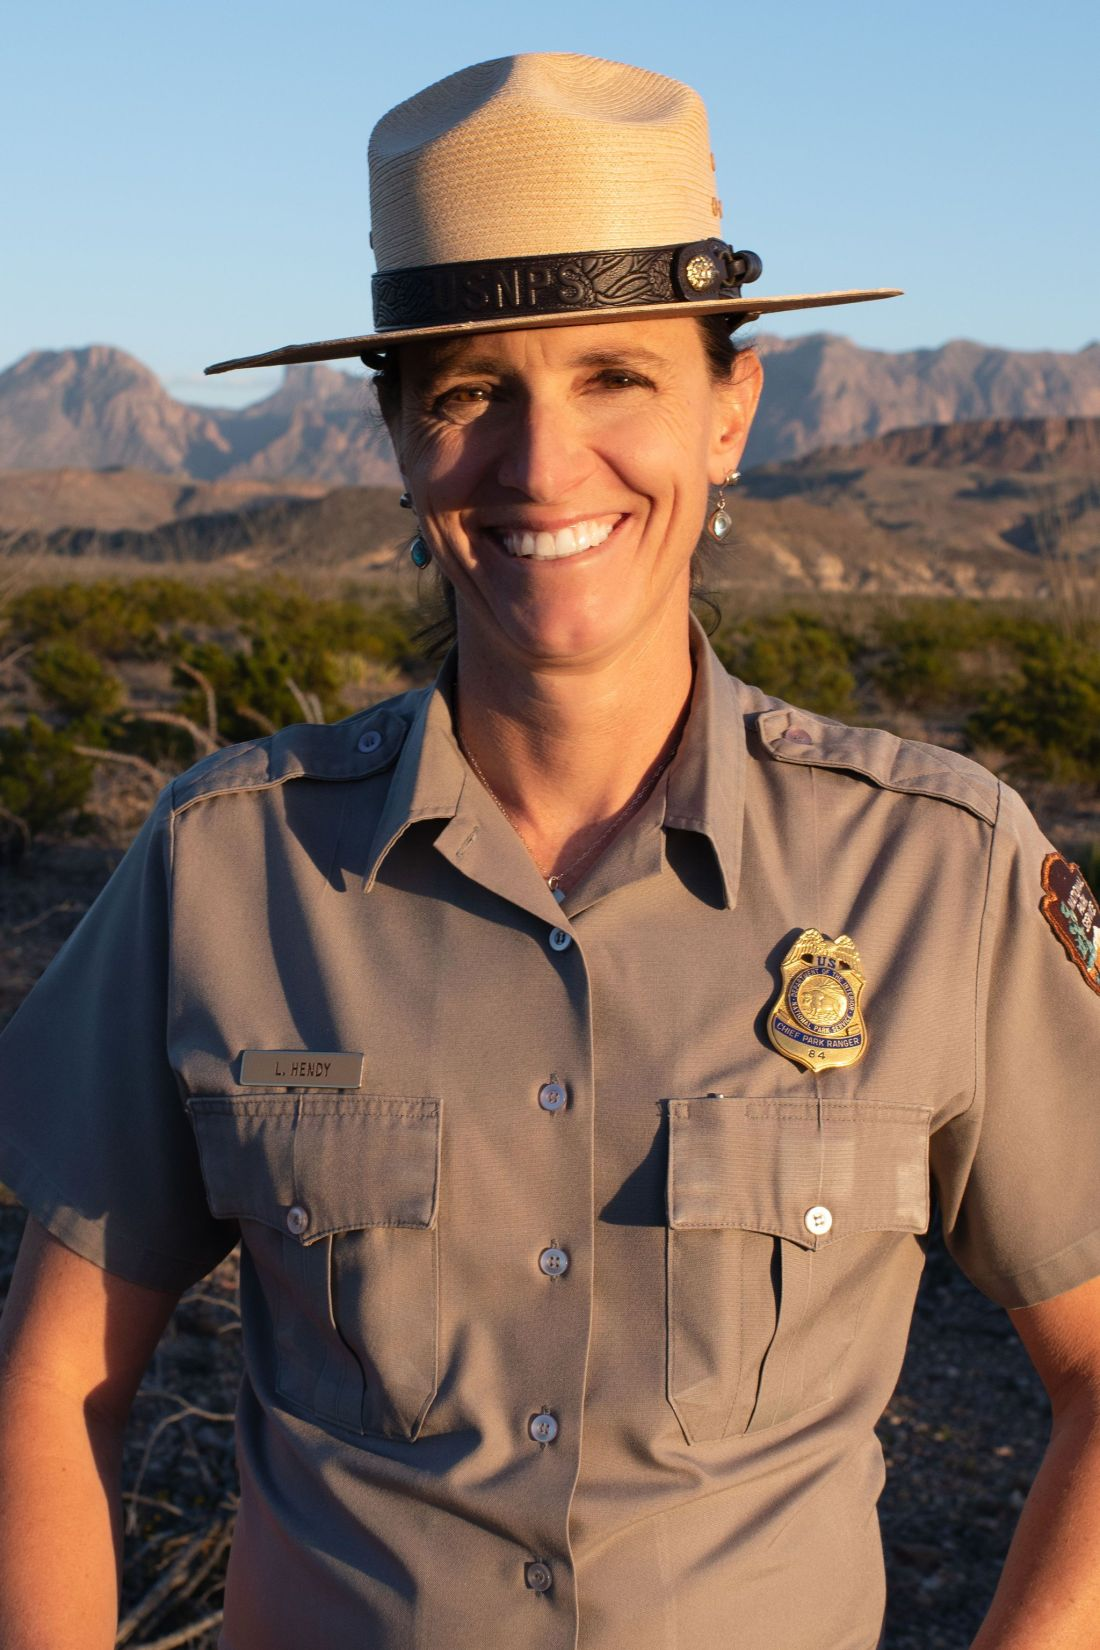 First Female Chief Ranger - Lisa Hendy will become the new Chief Ranger of the Great Smoky Mountains National Park in April.